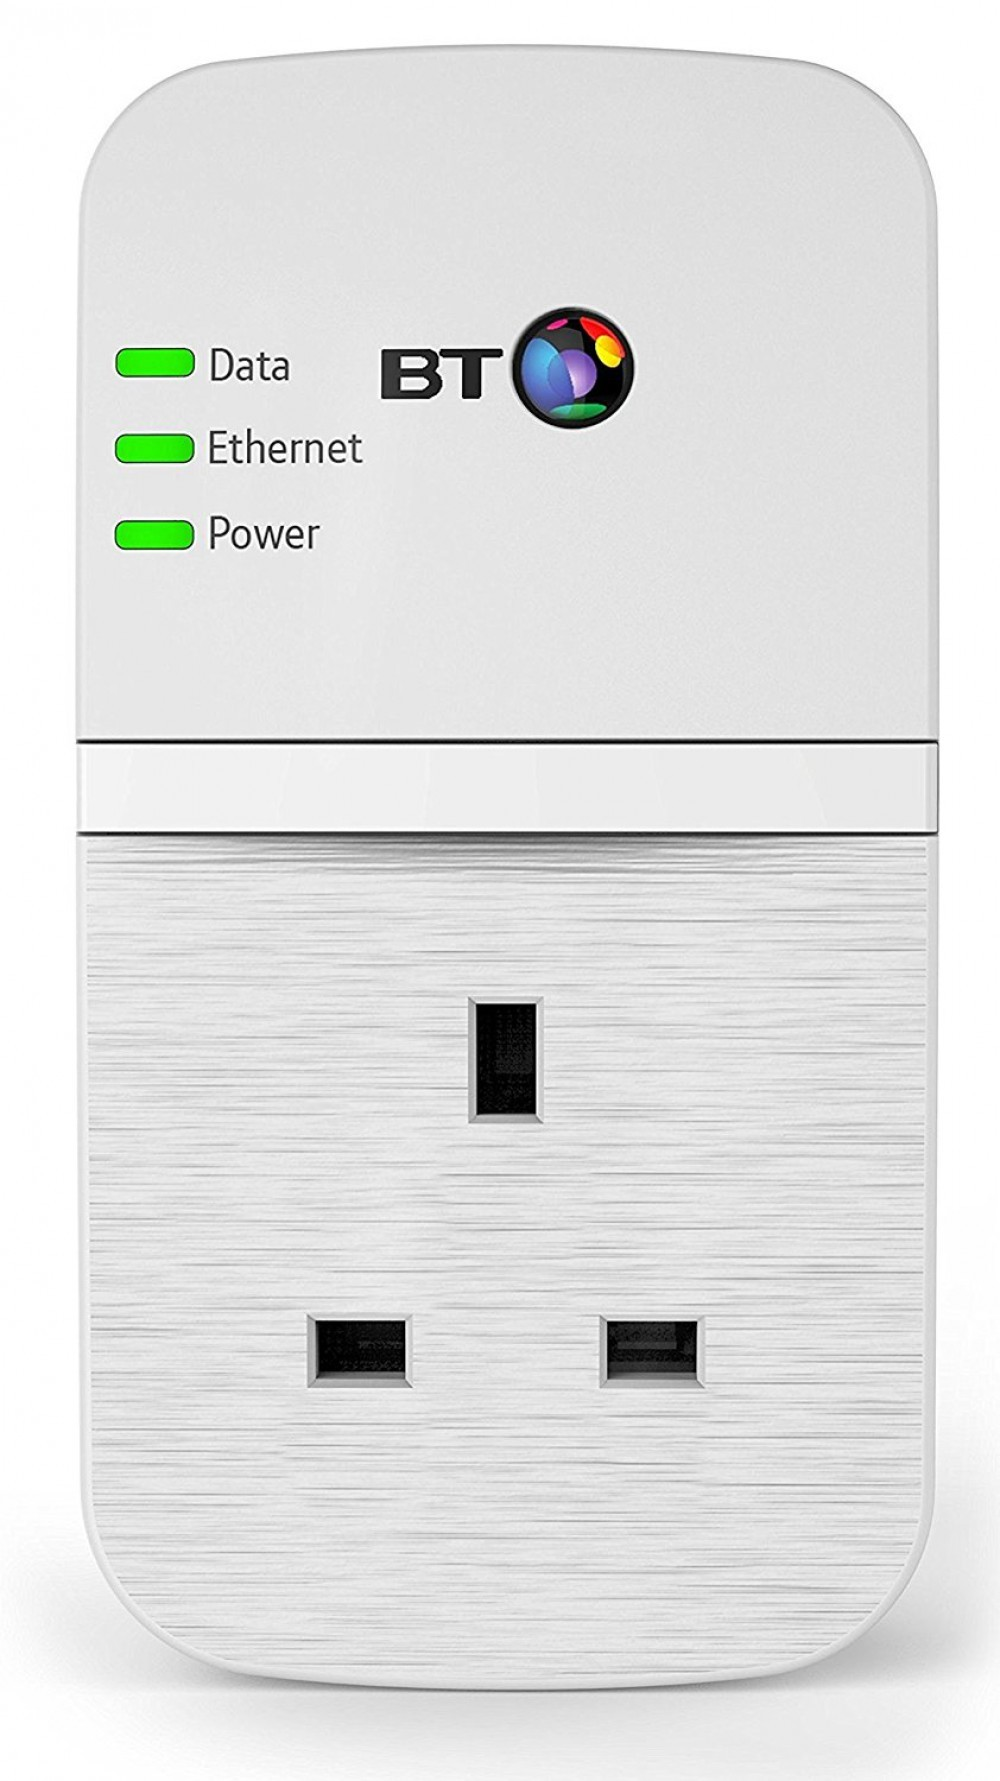 BT Wi-Fi | Home Hotspot Plus 600 Kit | From £73.49 - PMC ...